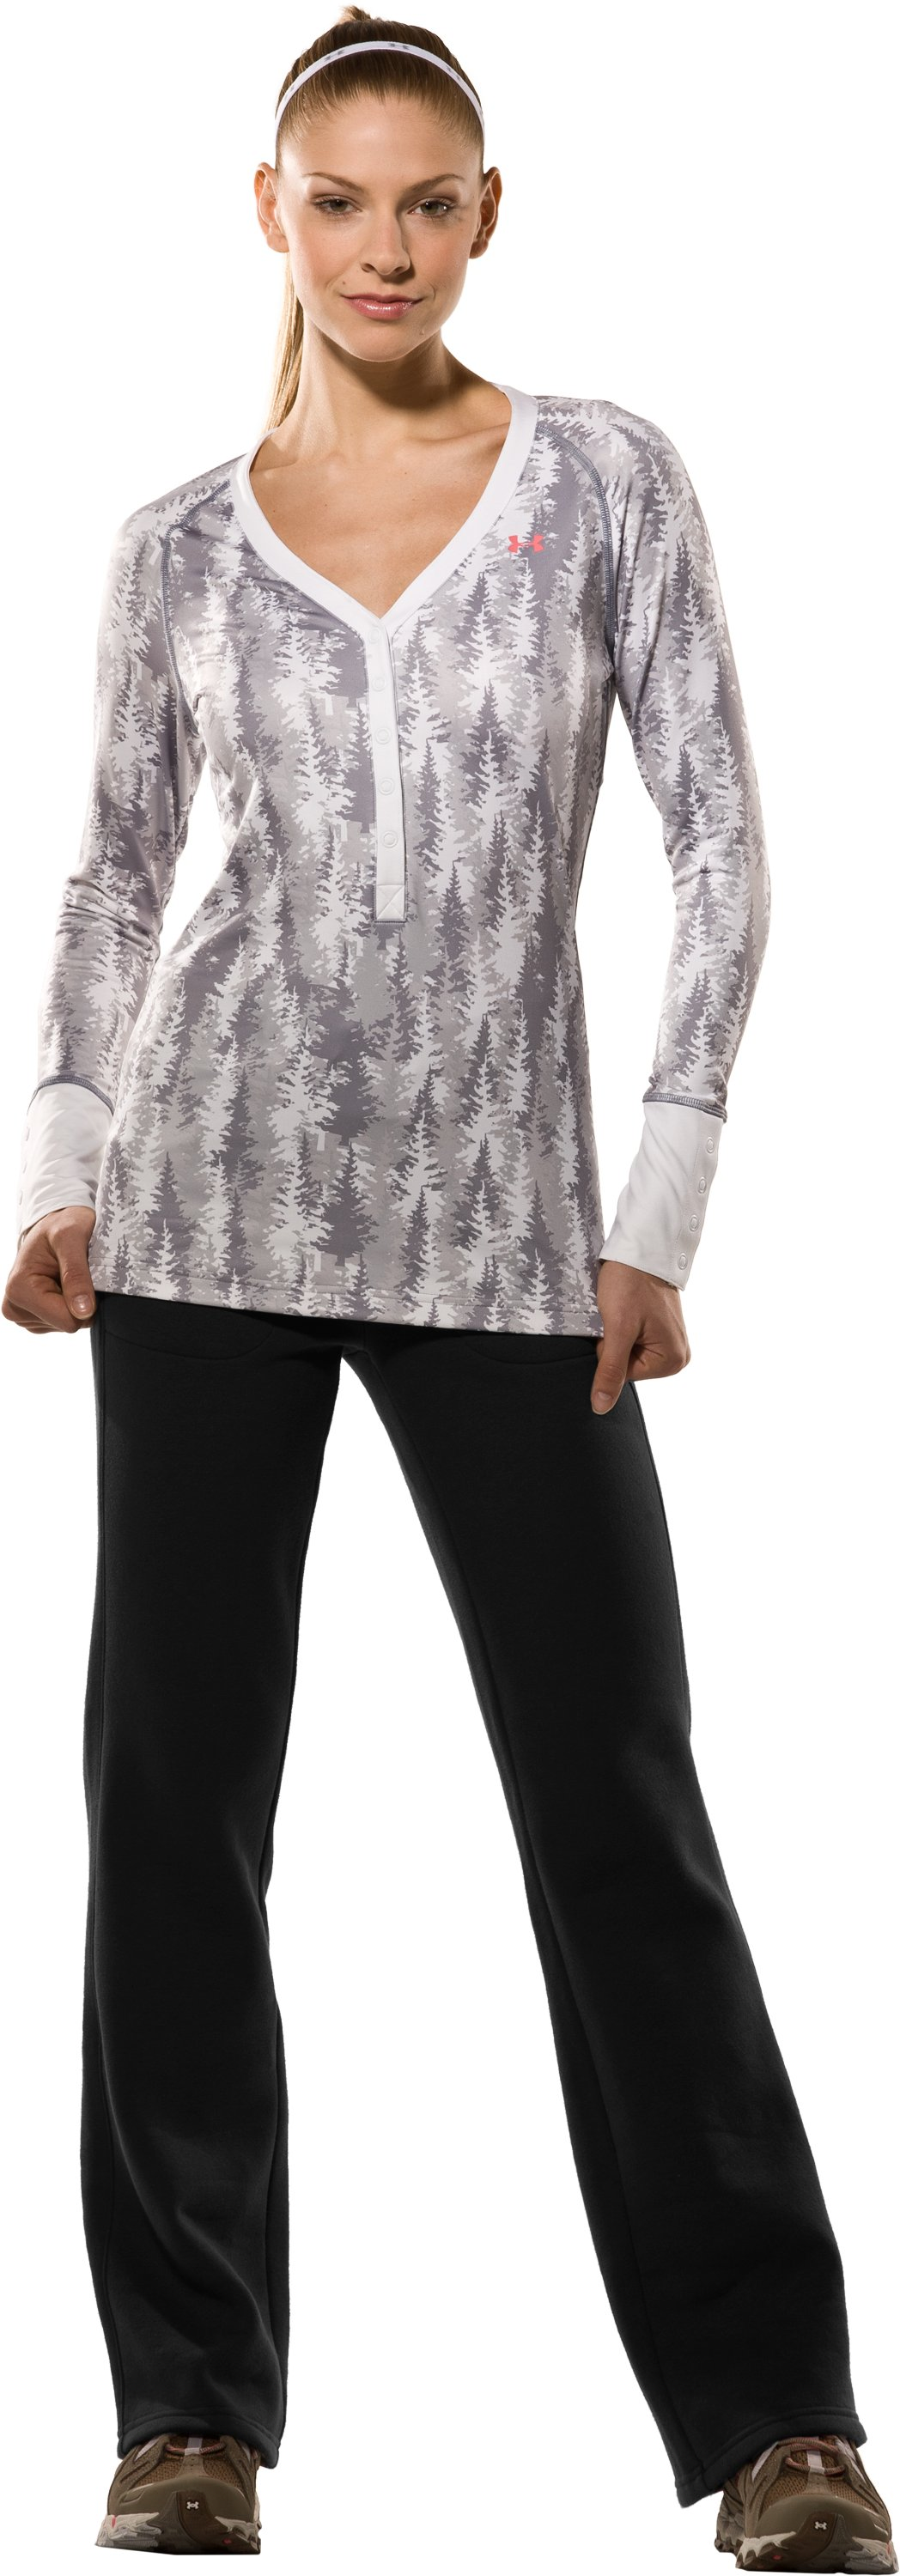 Women's EVO ColdGear® Tree Print Henley Shirt, White